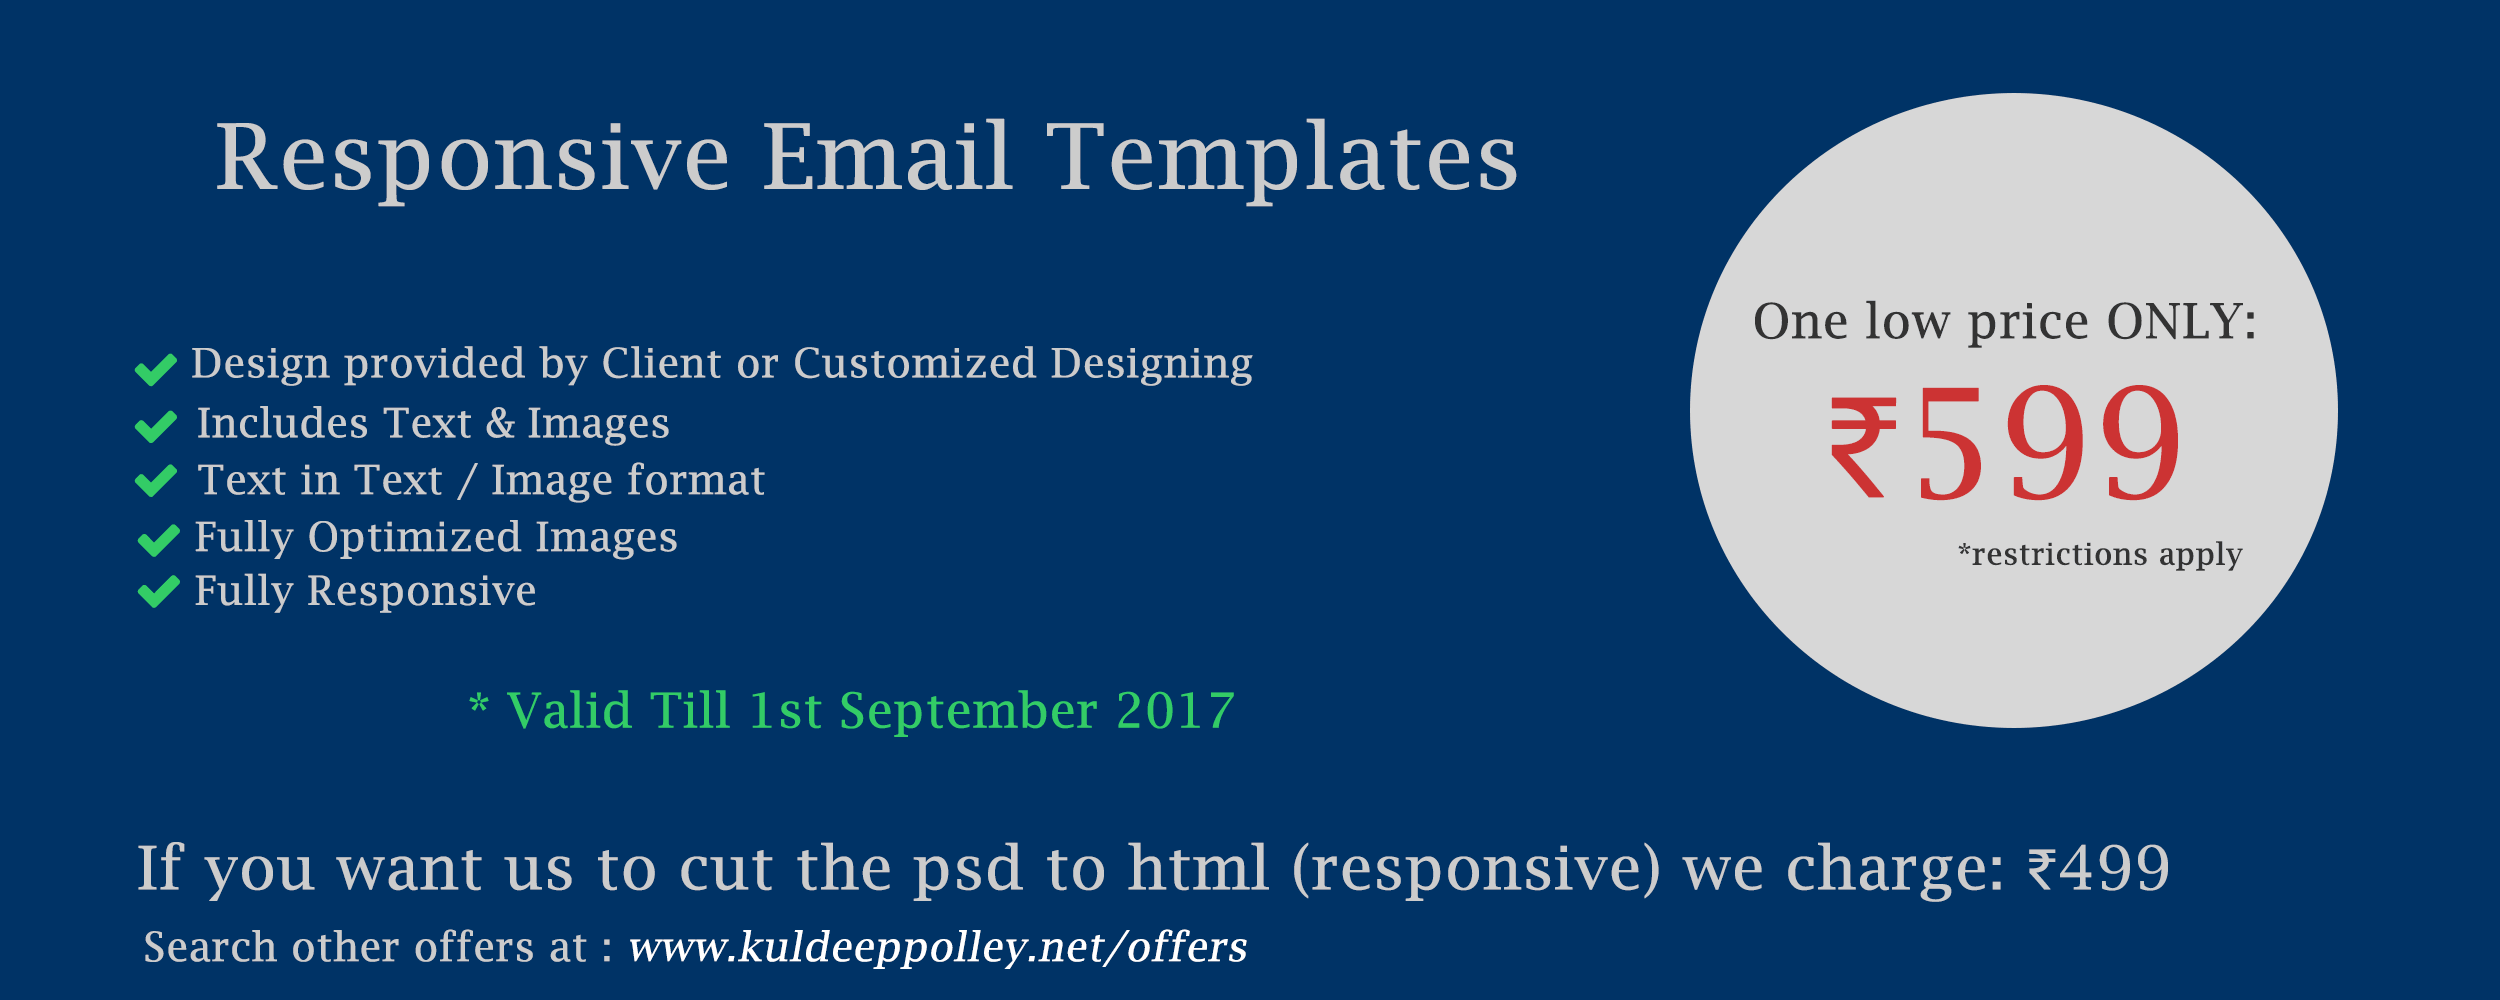 responsive email template offer